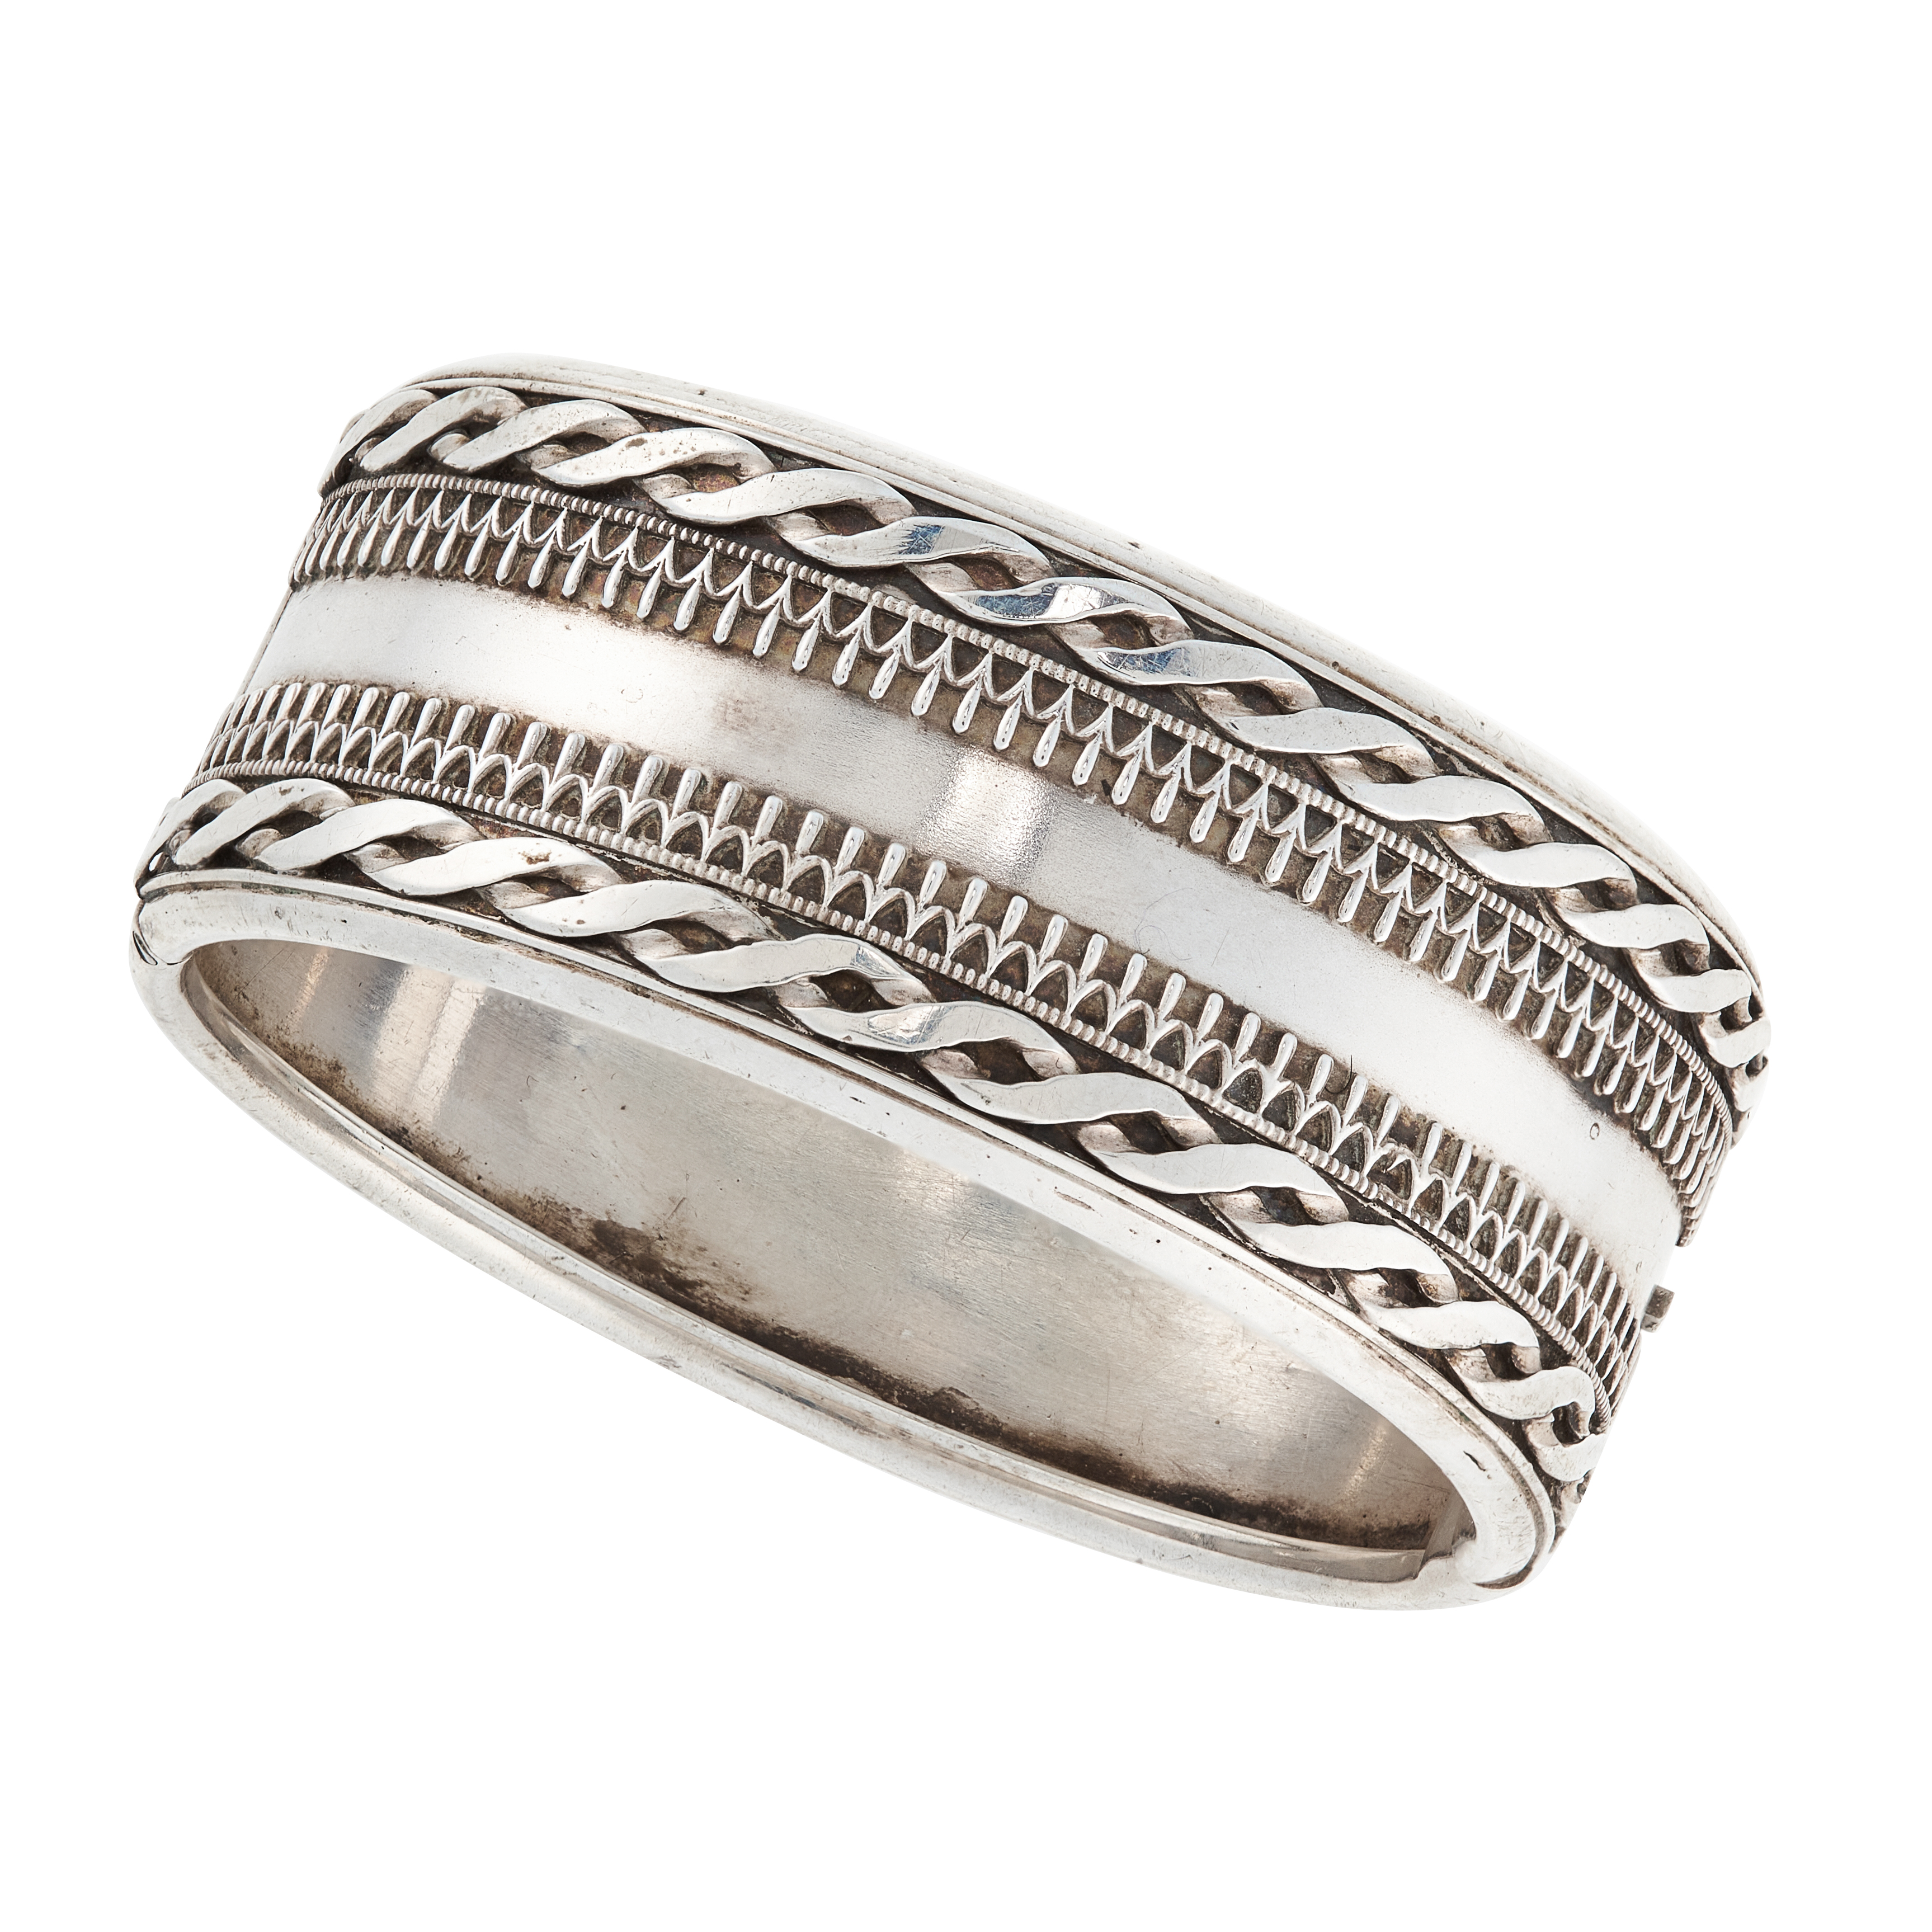 AN ANTIQUE CUFF BANGLE, LATE 19TH CENTURY in sterling silver, with twisted rope work borders,